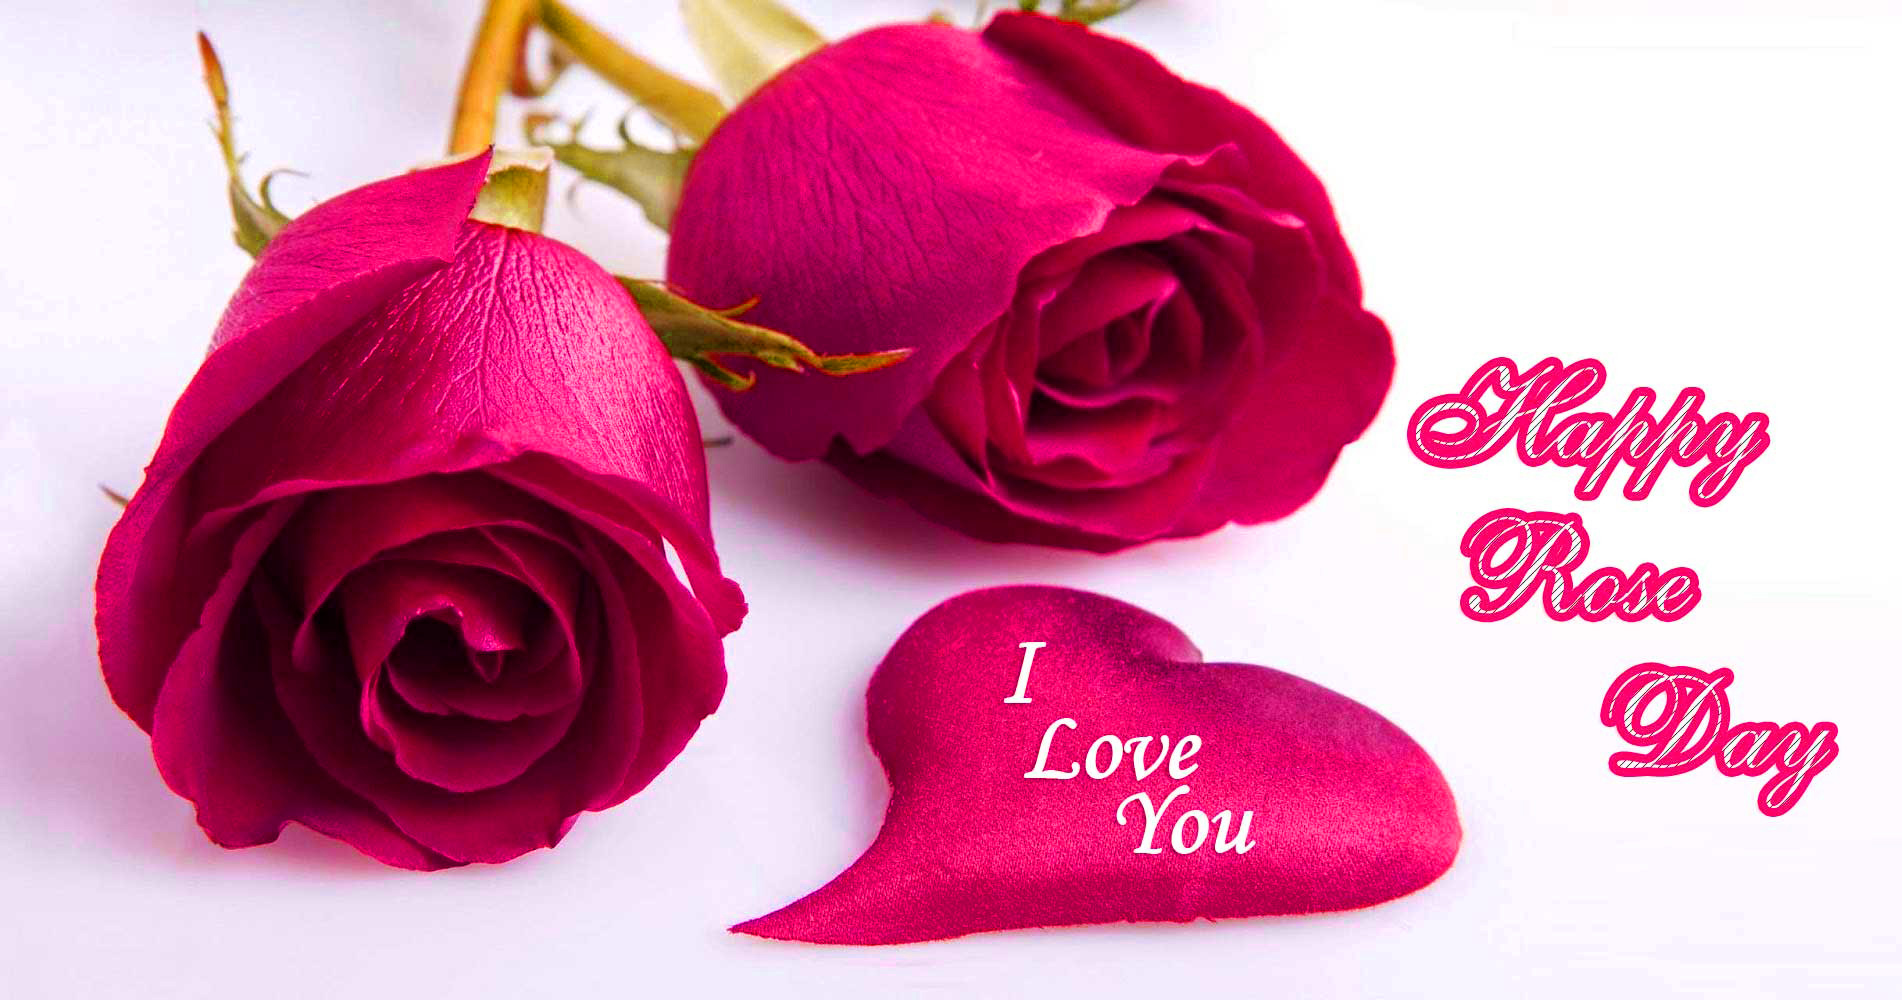 Happy Rose Day Images Photo Wallpaper Pictures Pics HD For Whatsapp